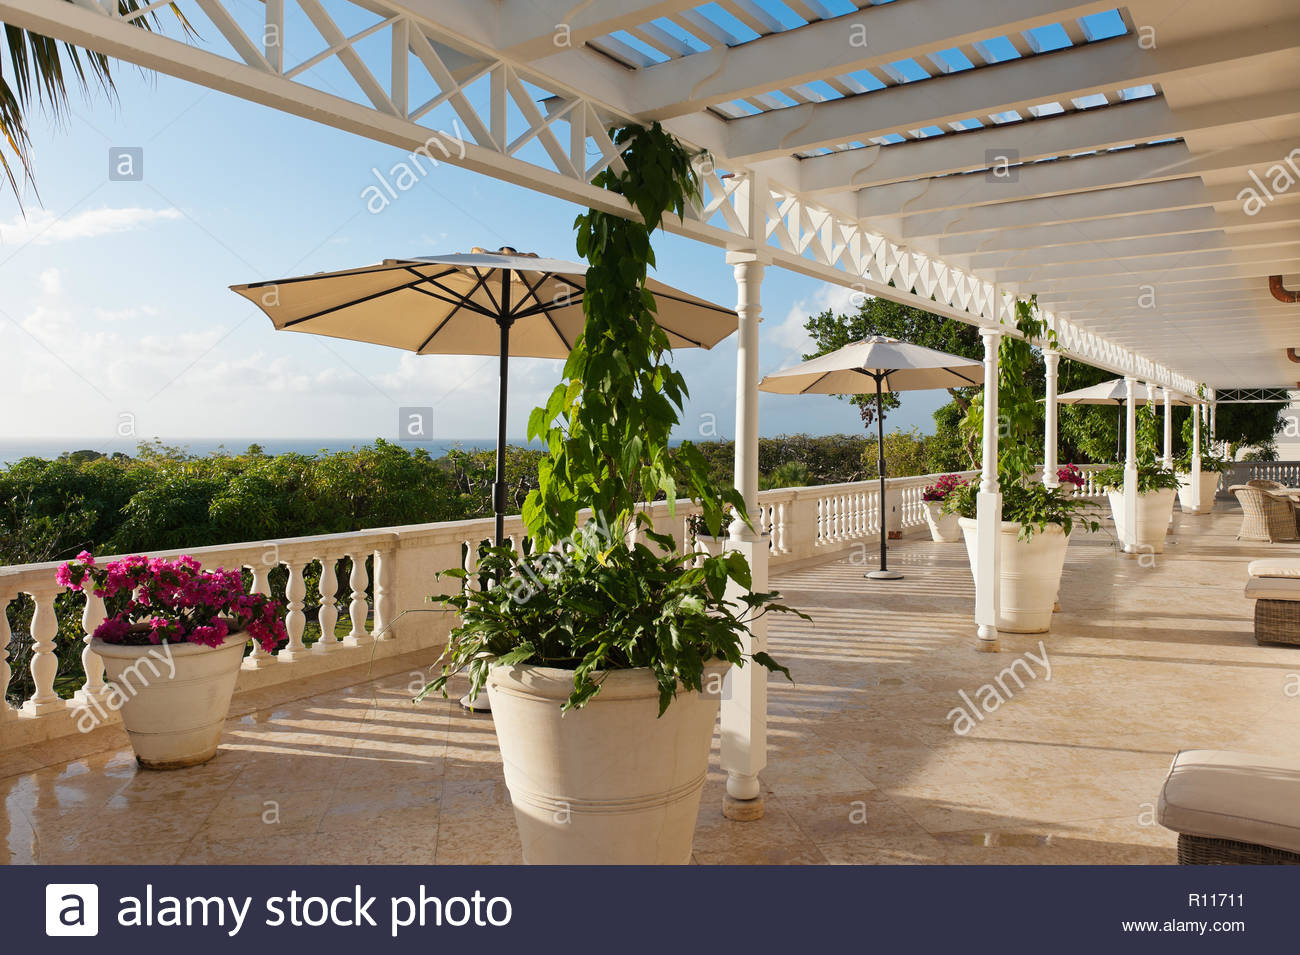 Umbrellas and potted plants on balcony - Stock Image